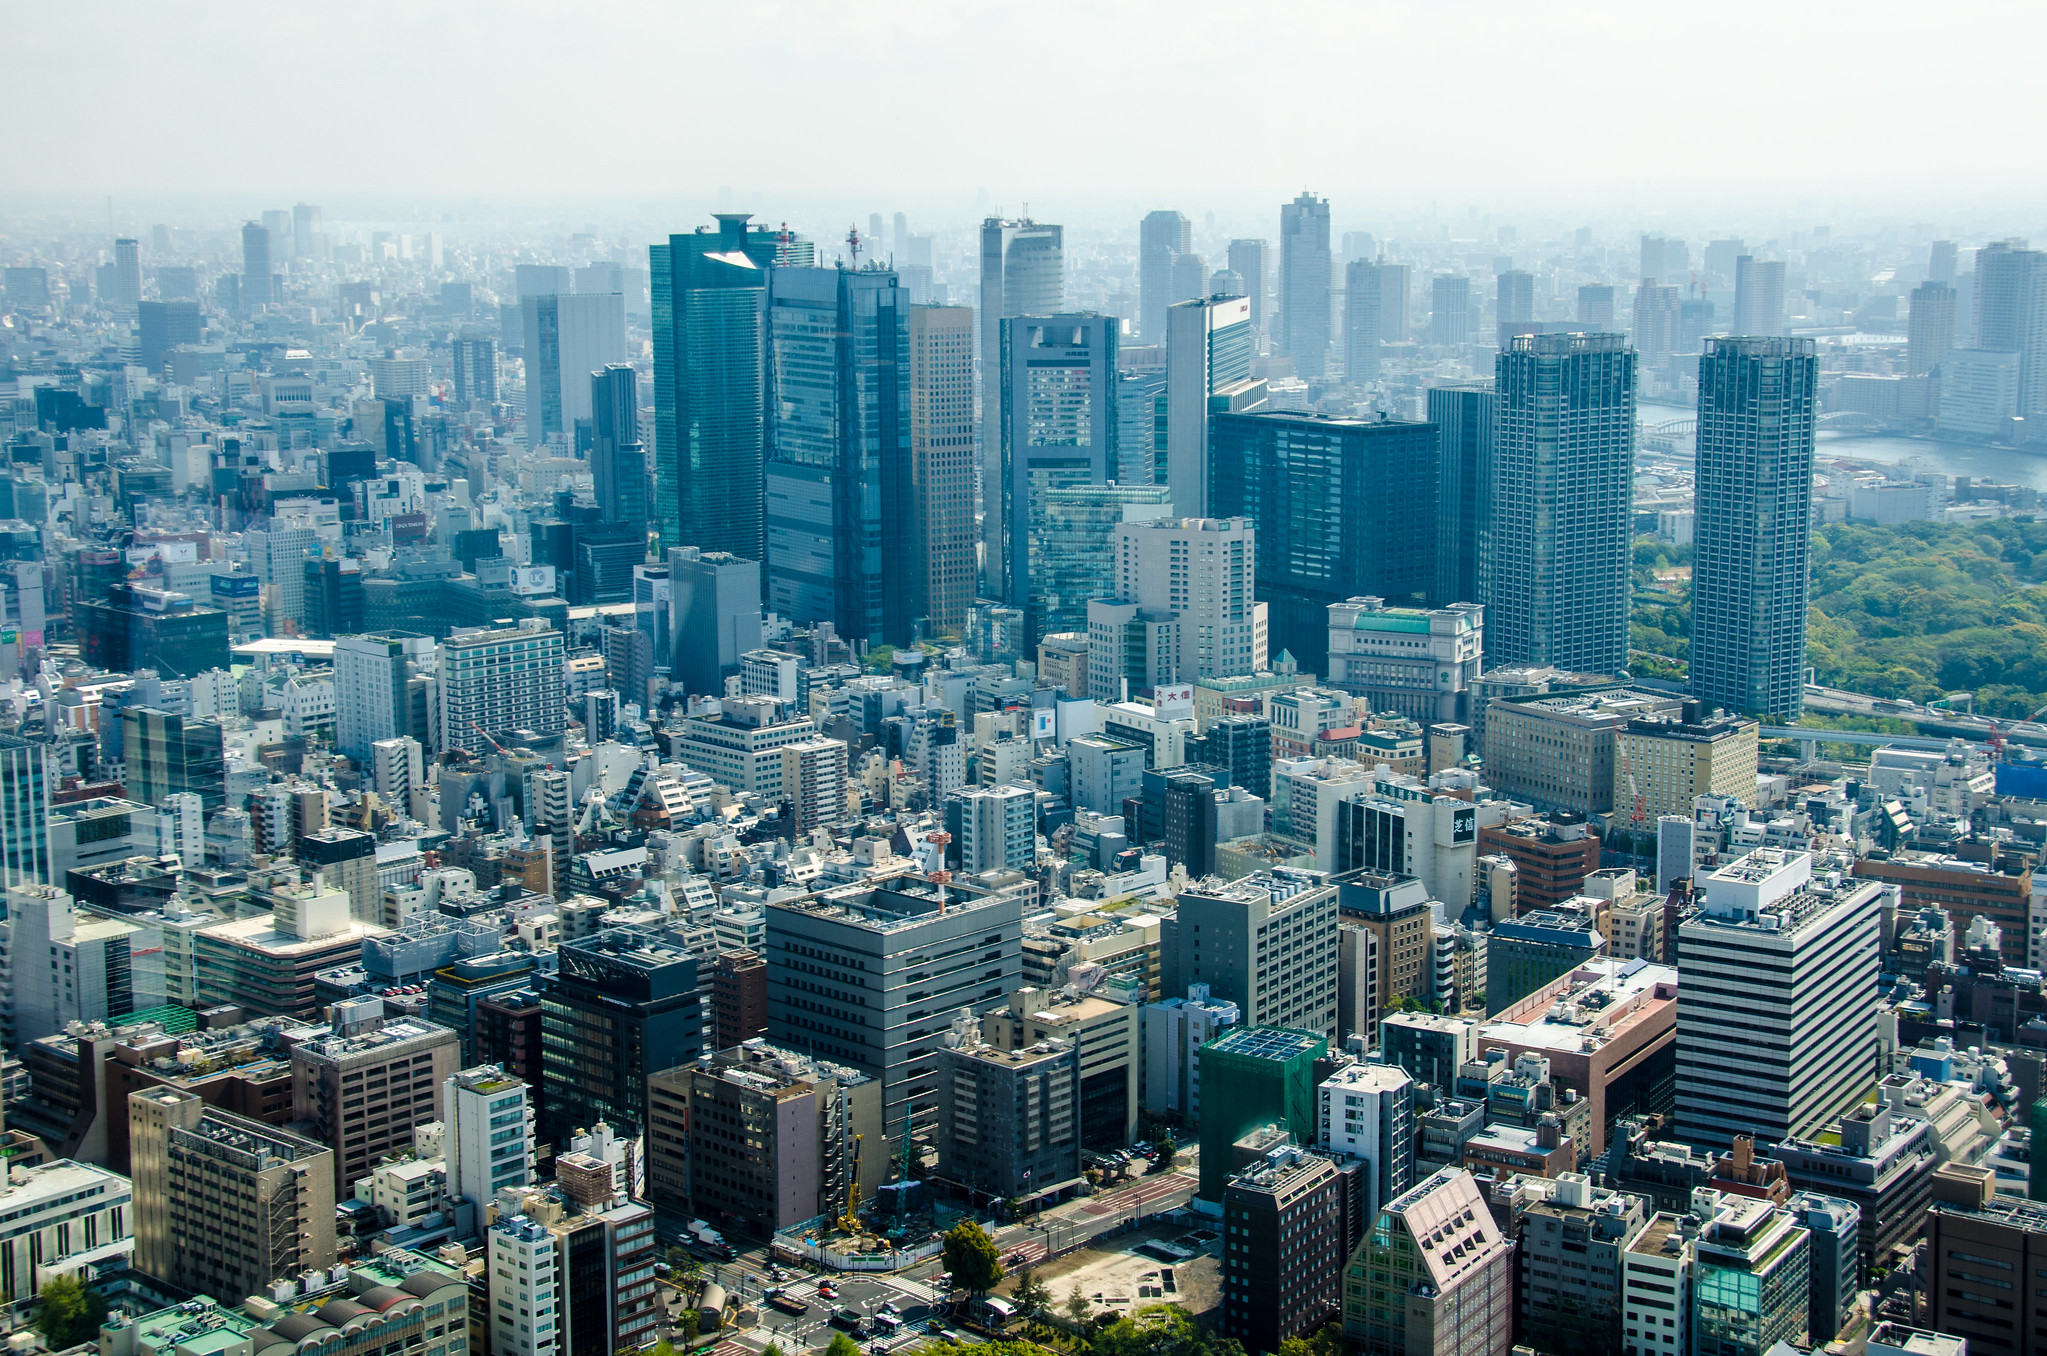 <p>View over Minato, a major commercial district in Tokyo where Sony, Honda, Fujitsu, Mitsubishi and other major companies are headquartered. Flickr/Thomas Buehler</p>